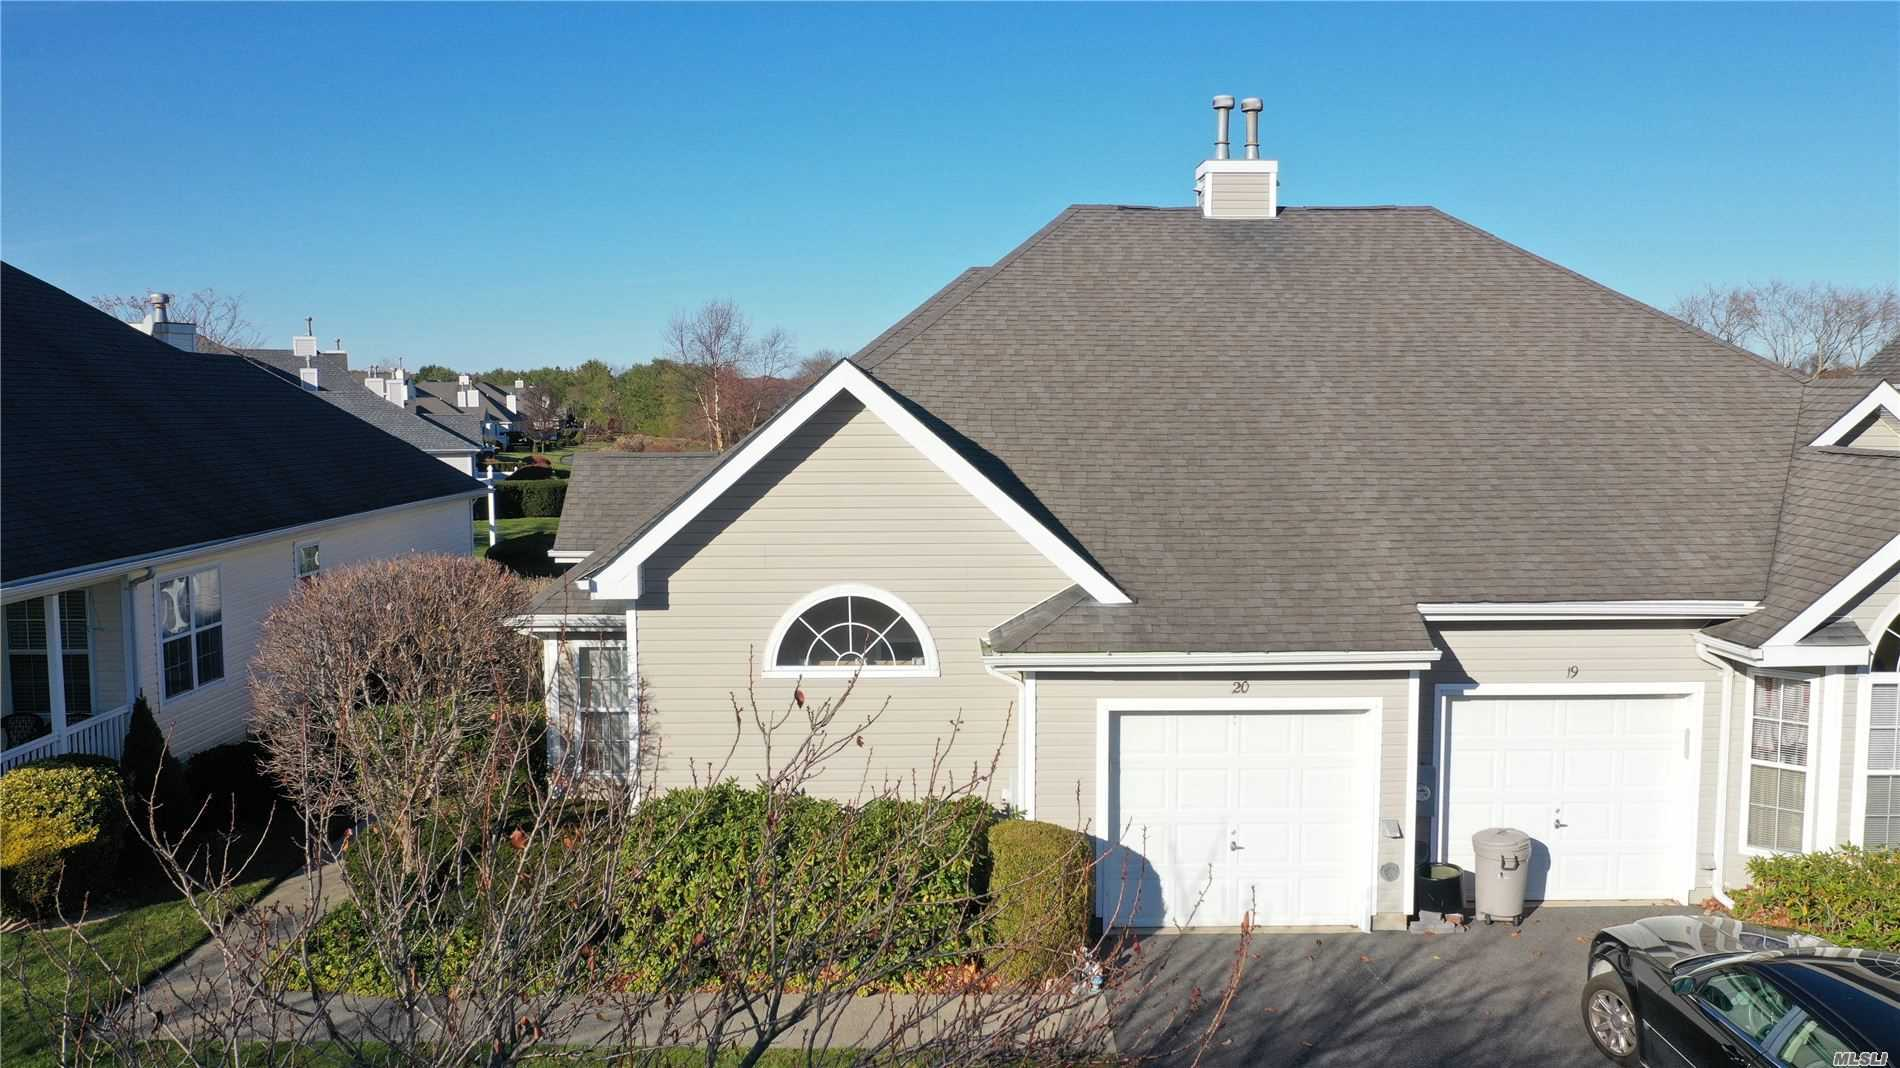 Property for sale at 20 Lakeview Court, Riverhead NY 11901, Riverhead,  New York 11901